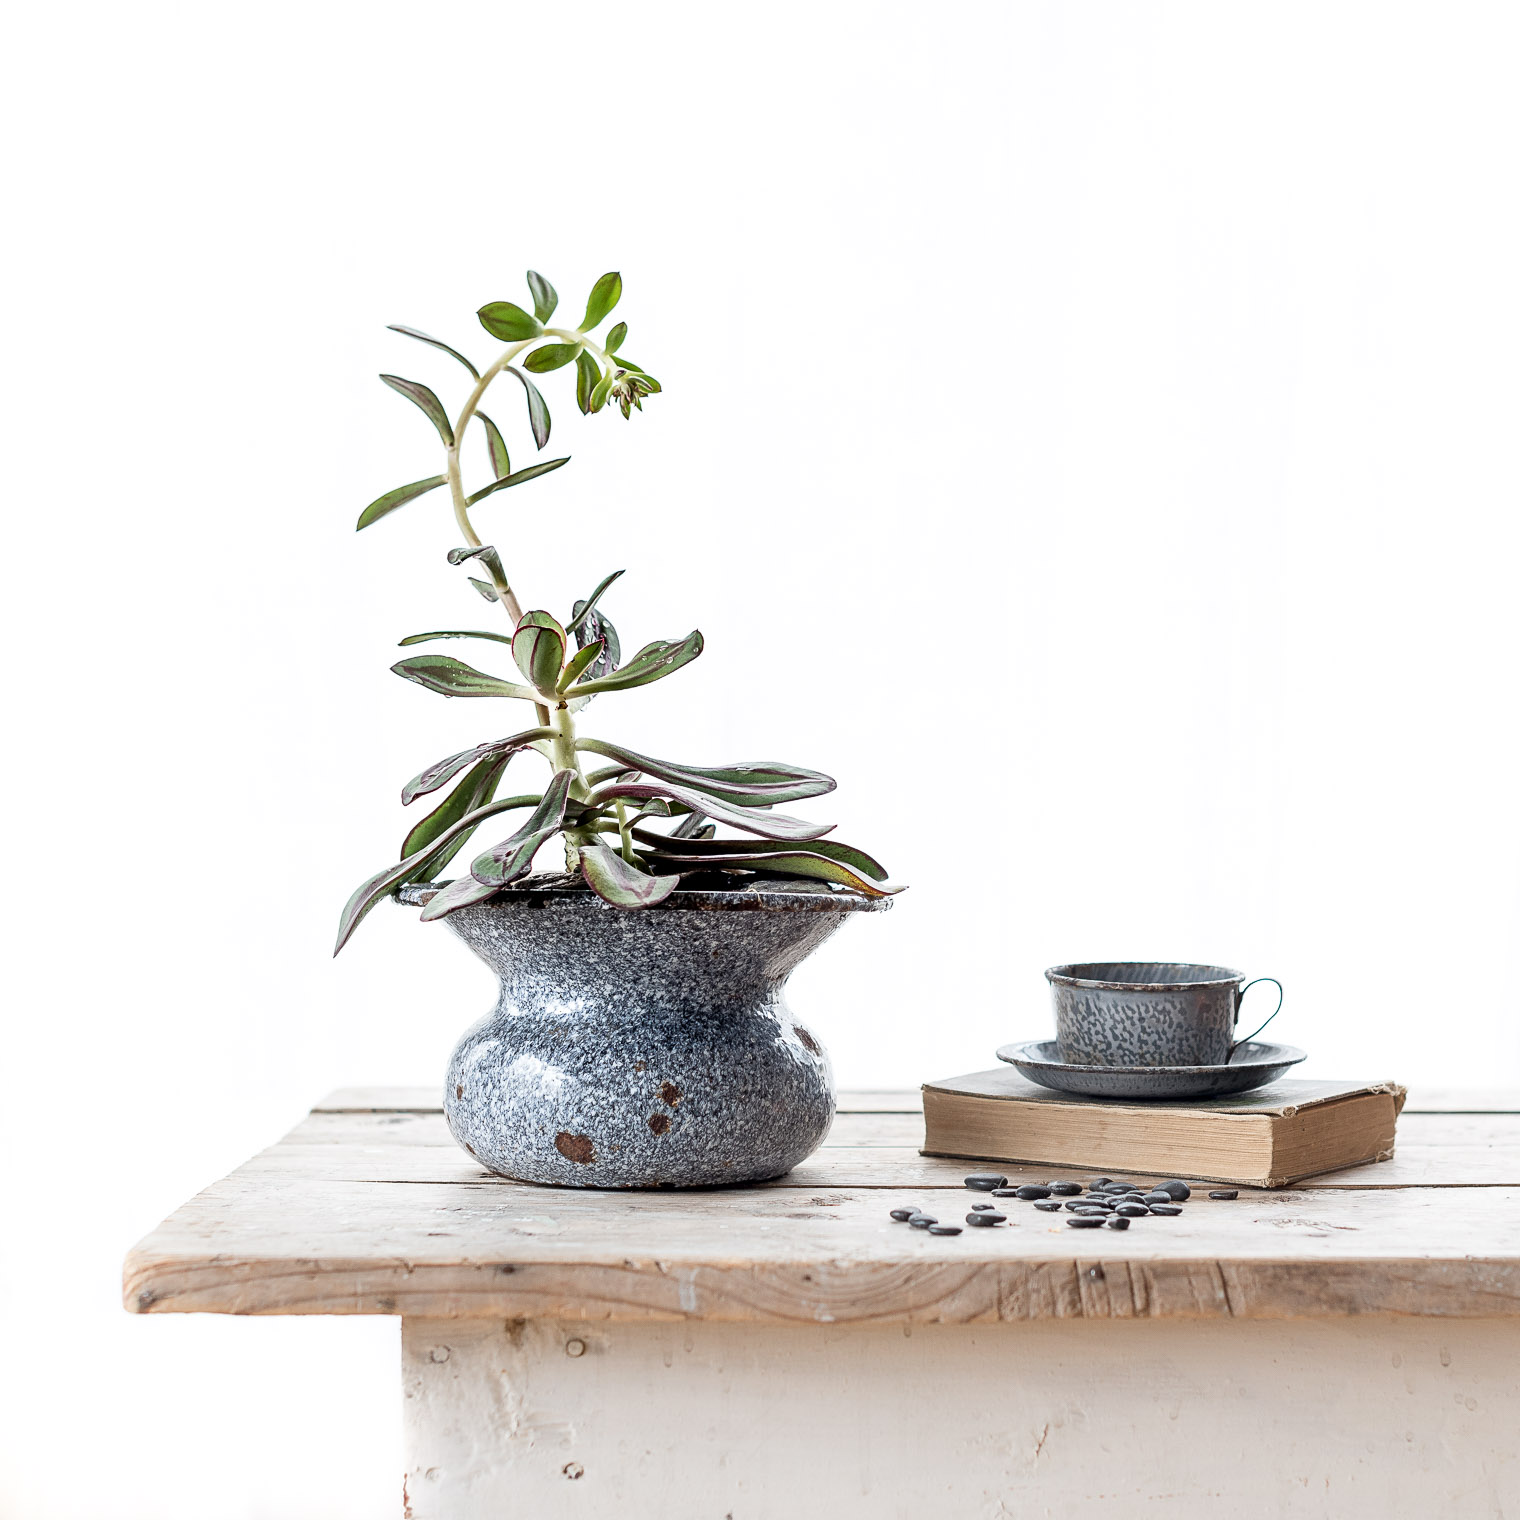 Tips for Overwintering Succulents Indoors, Keeping With the Times